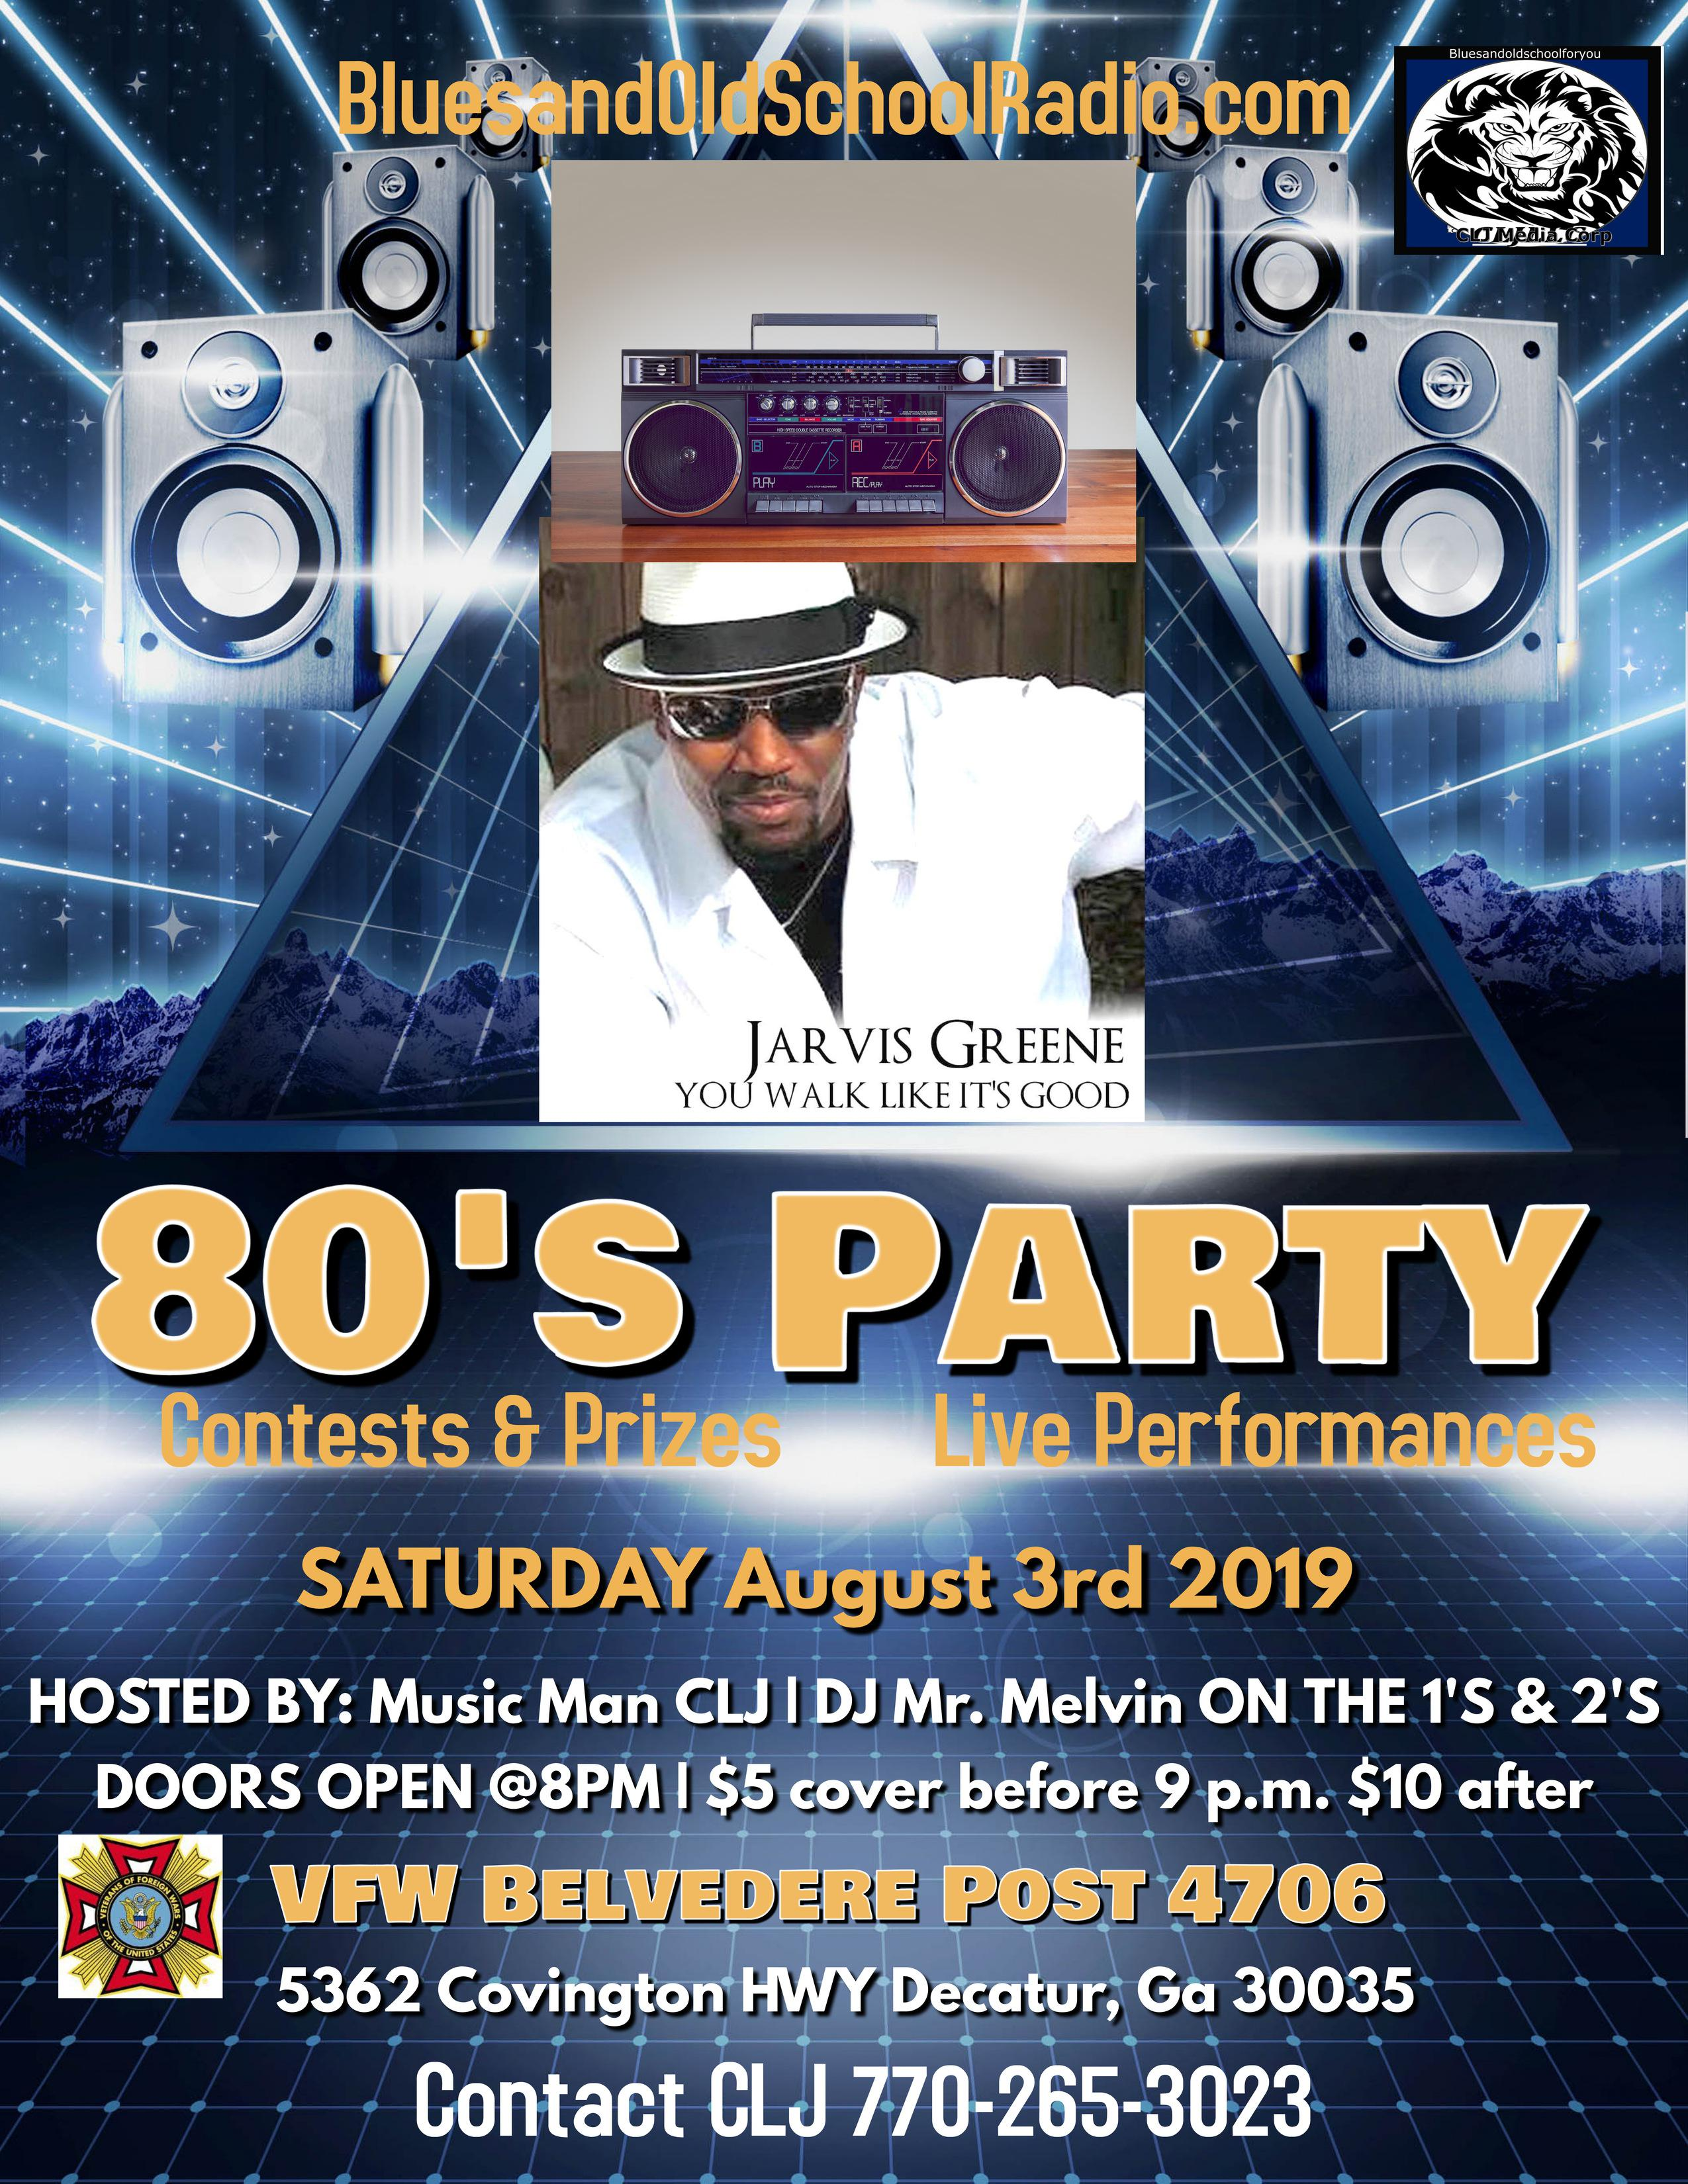 80's Party At VFW Redone